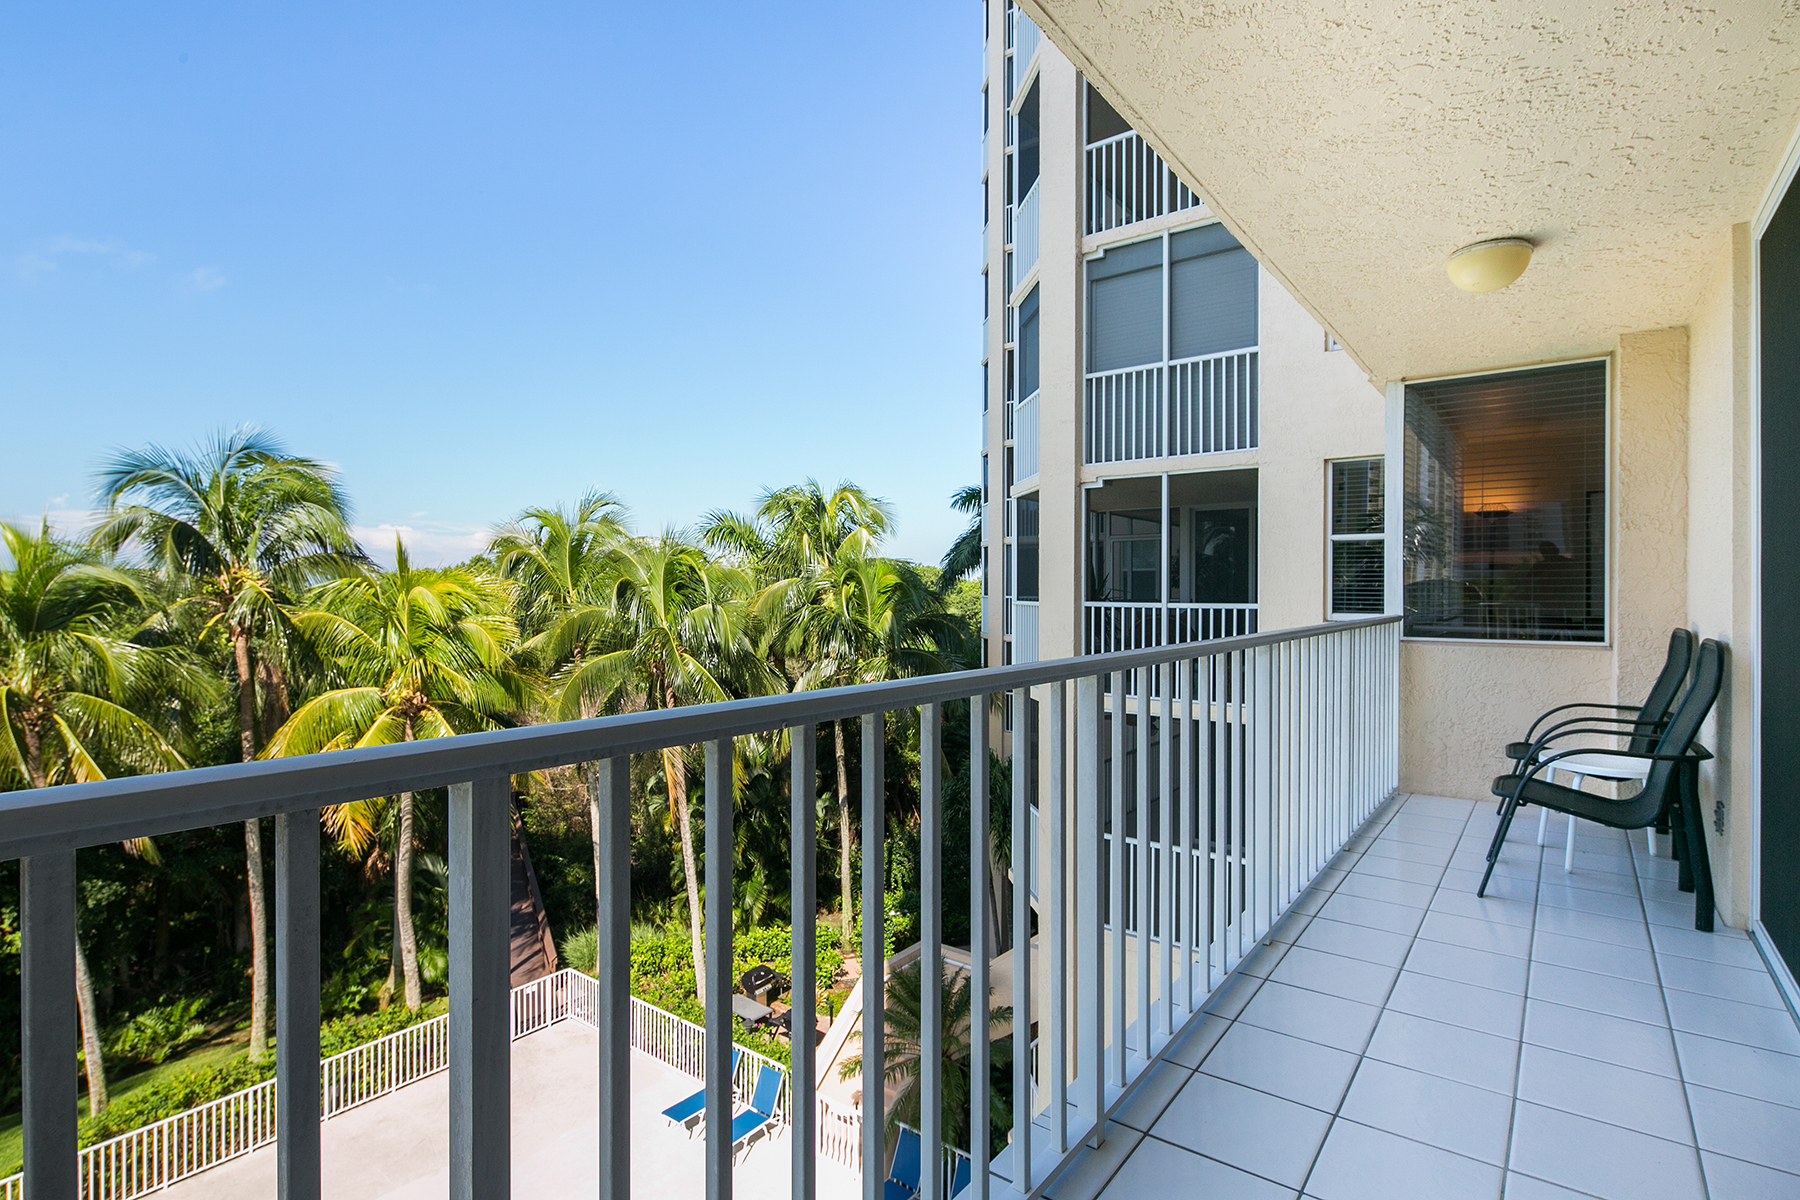 Condominium for Sale at Pelican Bay - St. Nicole 5550 Heron Point Dr 304 Naples, Florida, 34108 United States